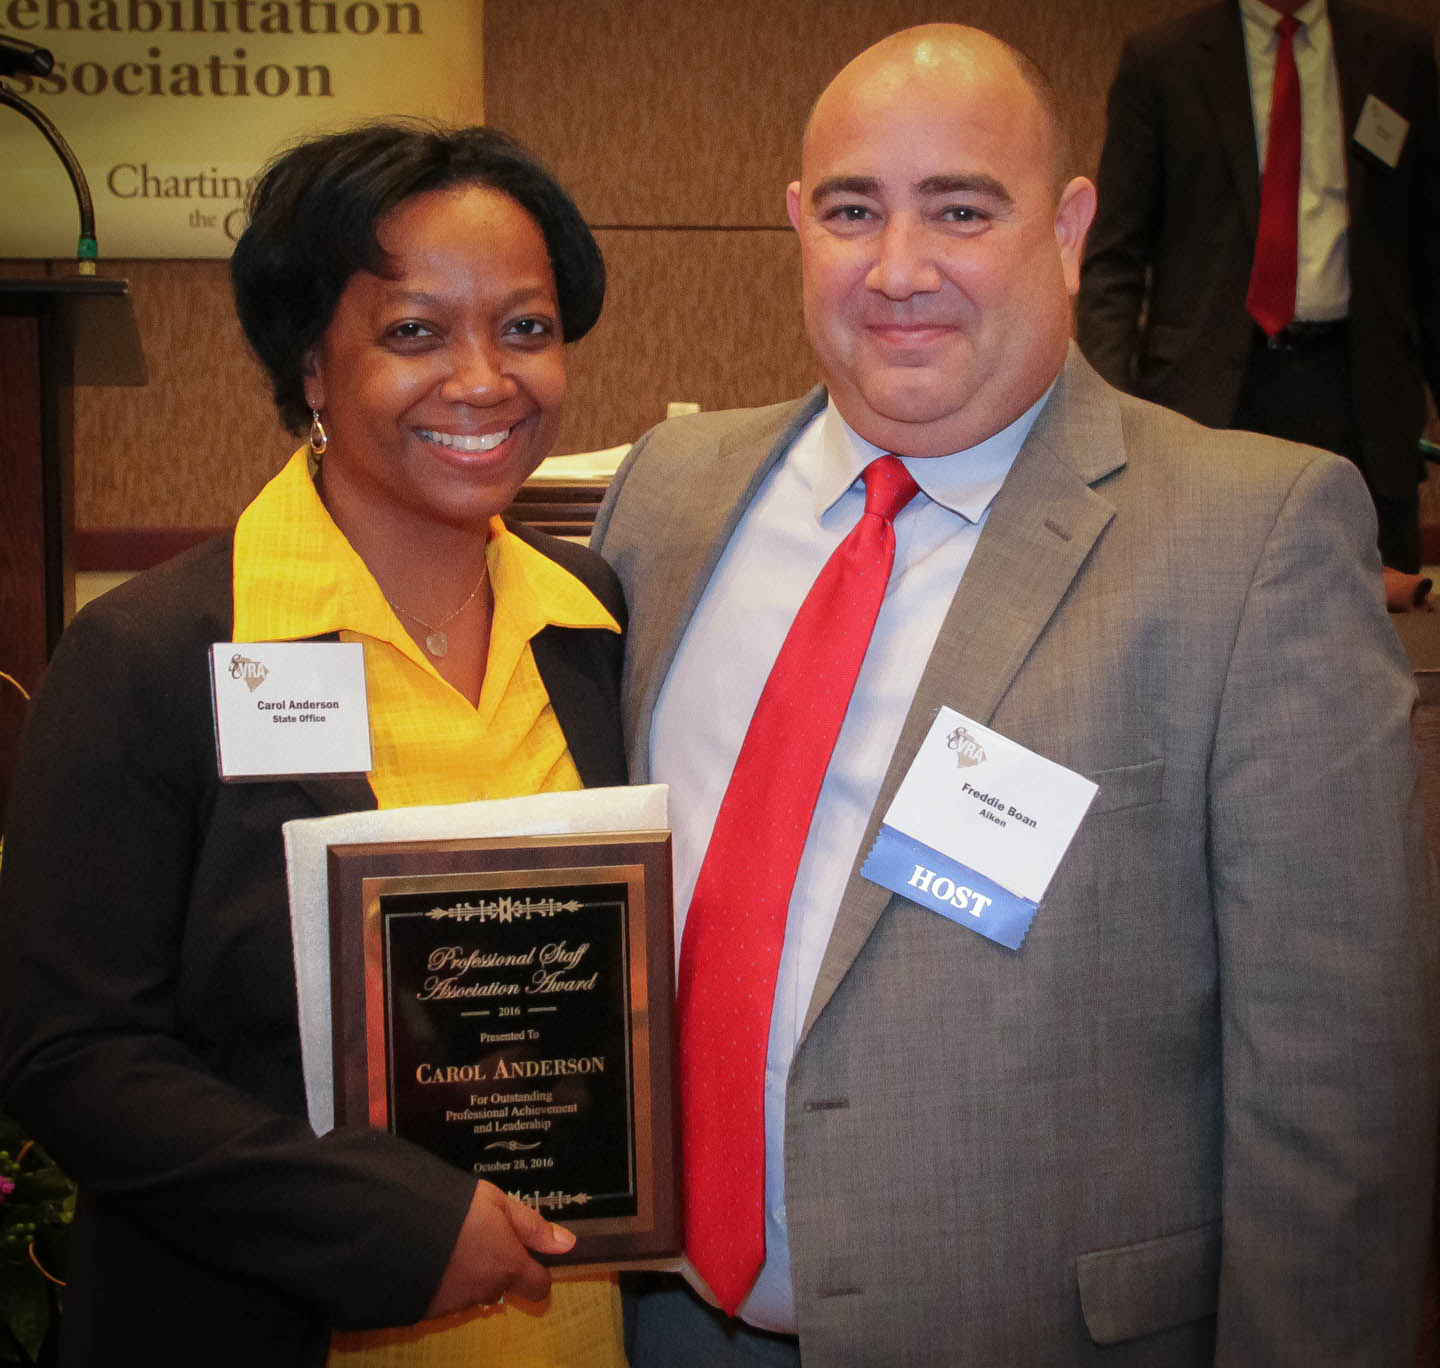 Carol Anderson (left), Area Development Director, accepts the Professional Staff Association Award from Freddie Boan, PSA President.